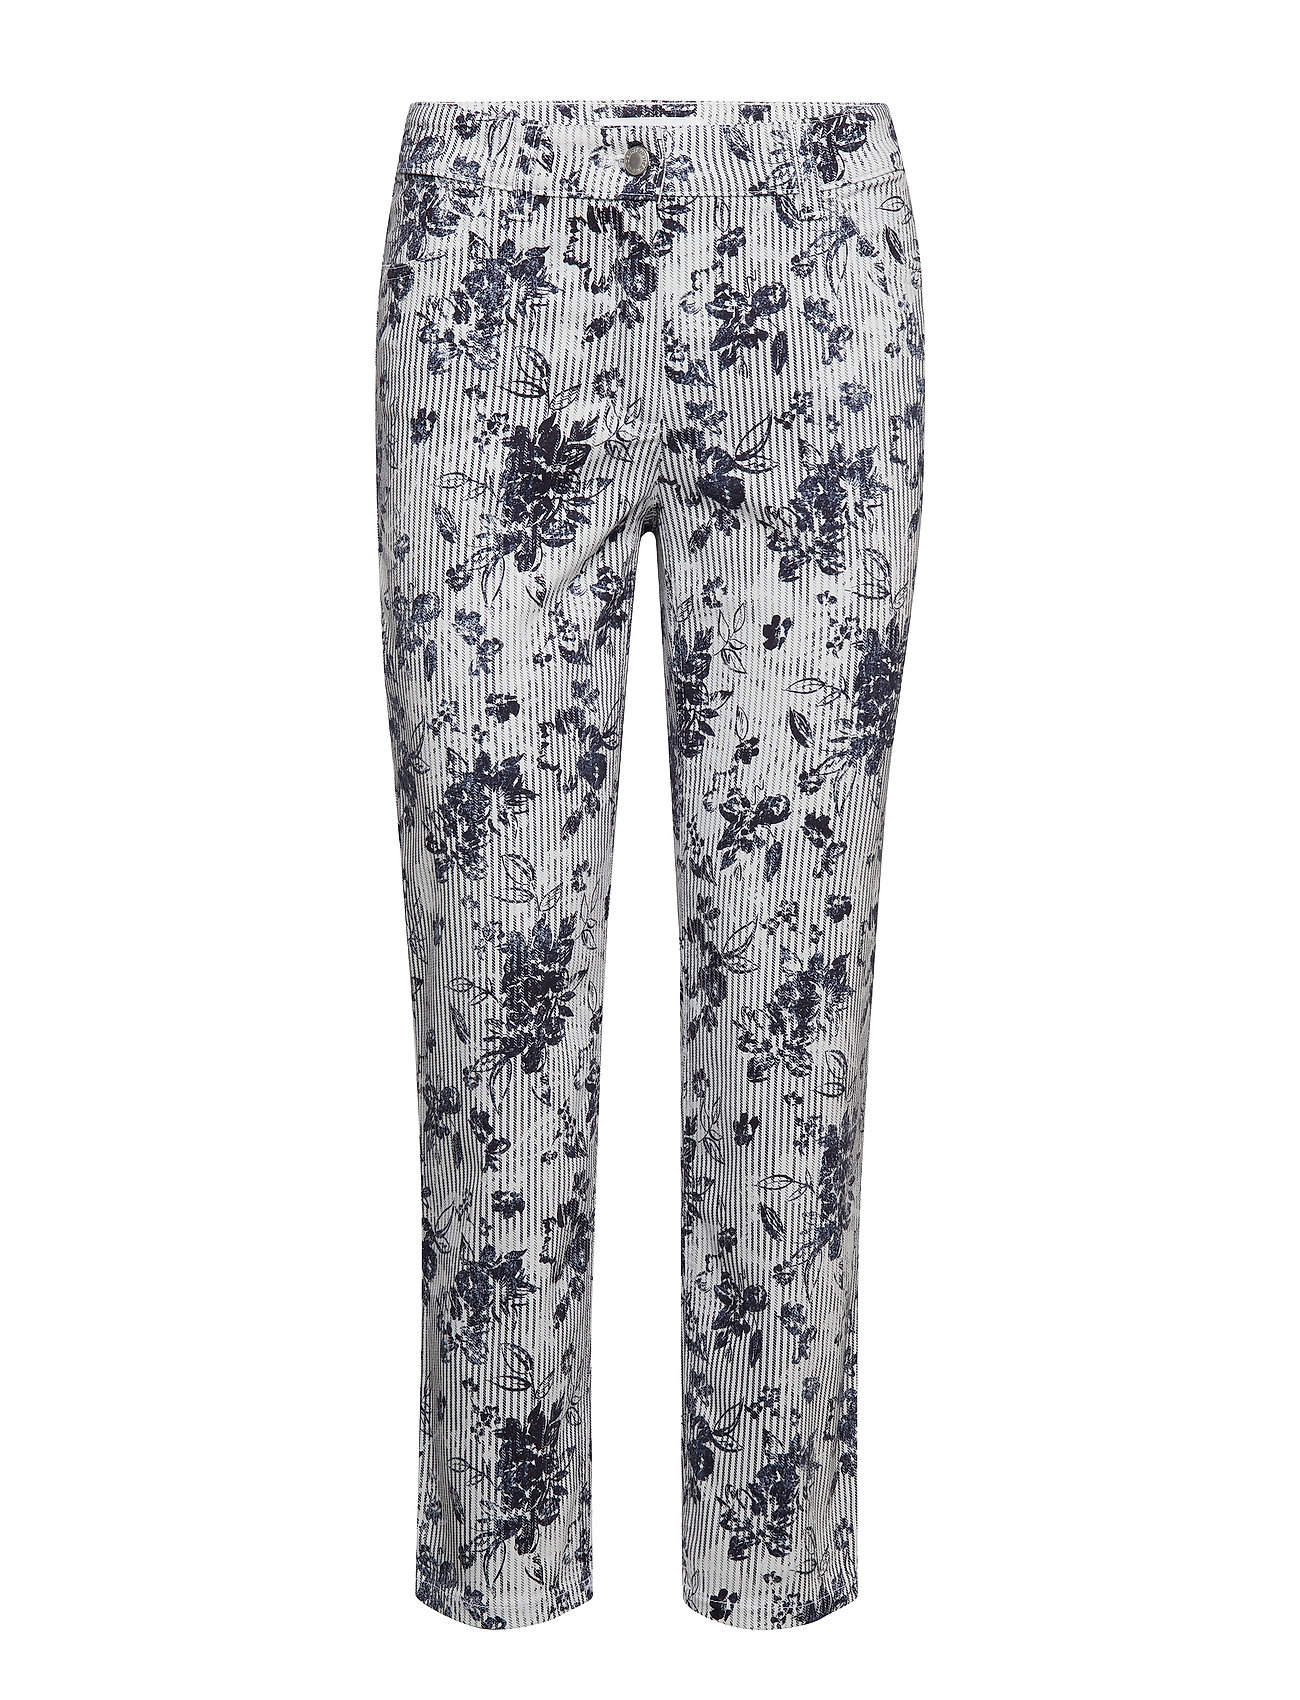 Gerry Weber Edition CROP TROUSERS JEANS - BLUE/WHITE